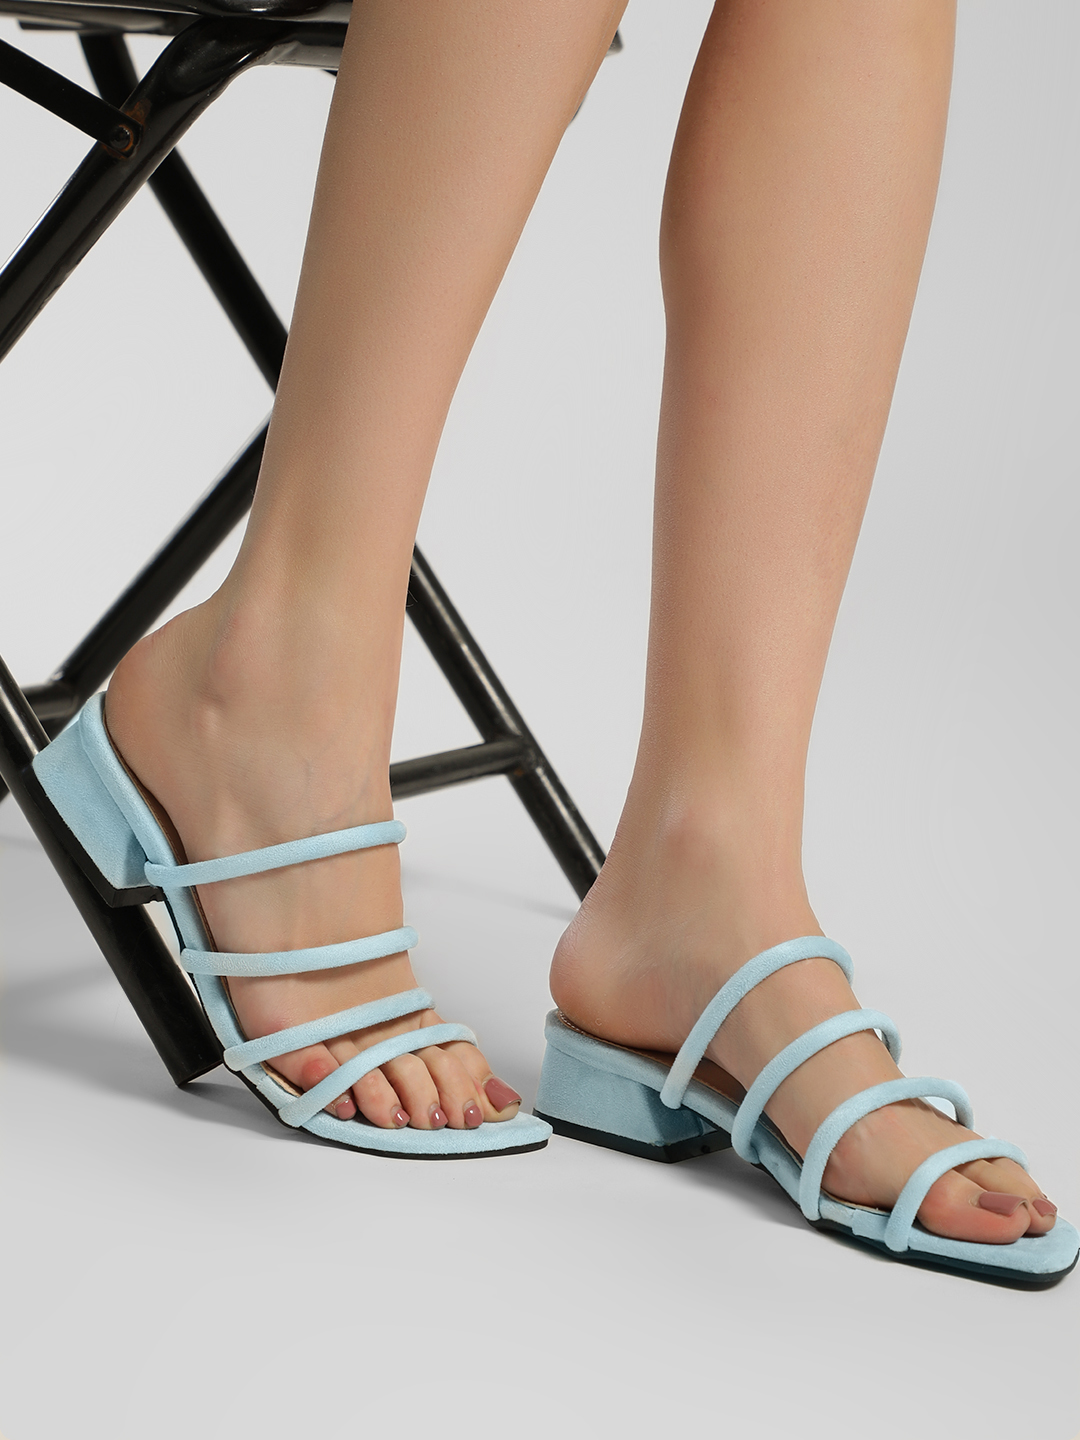 My Foot Couture Blue Suede Multi-Strap Heeled Sandals 1